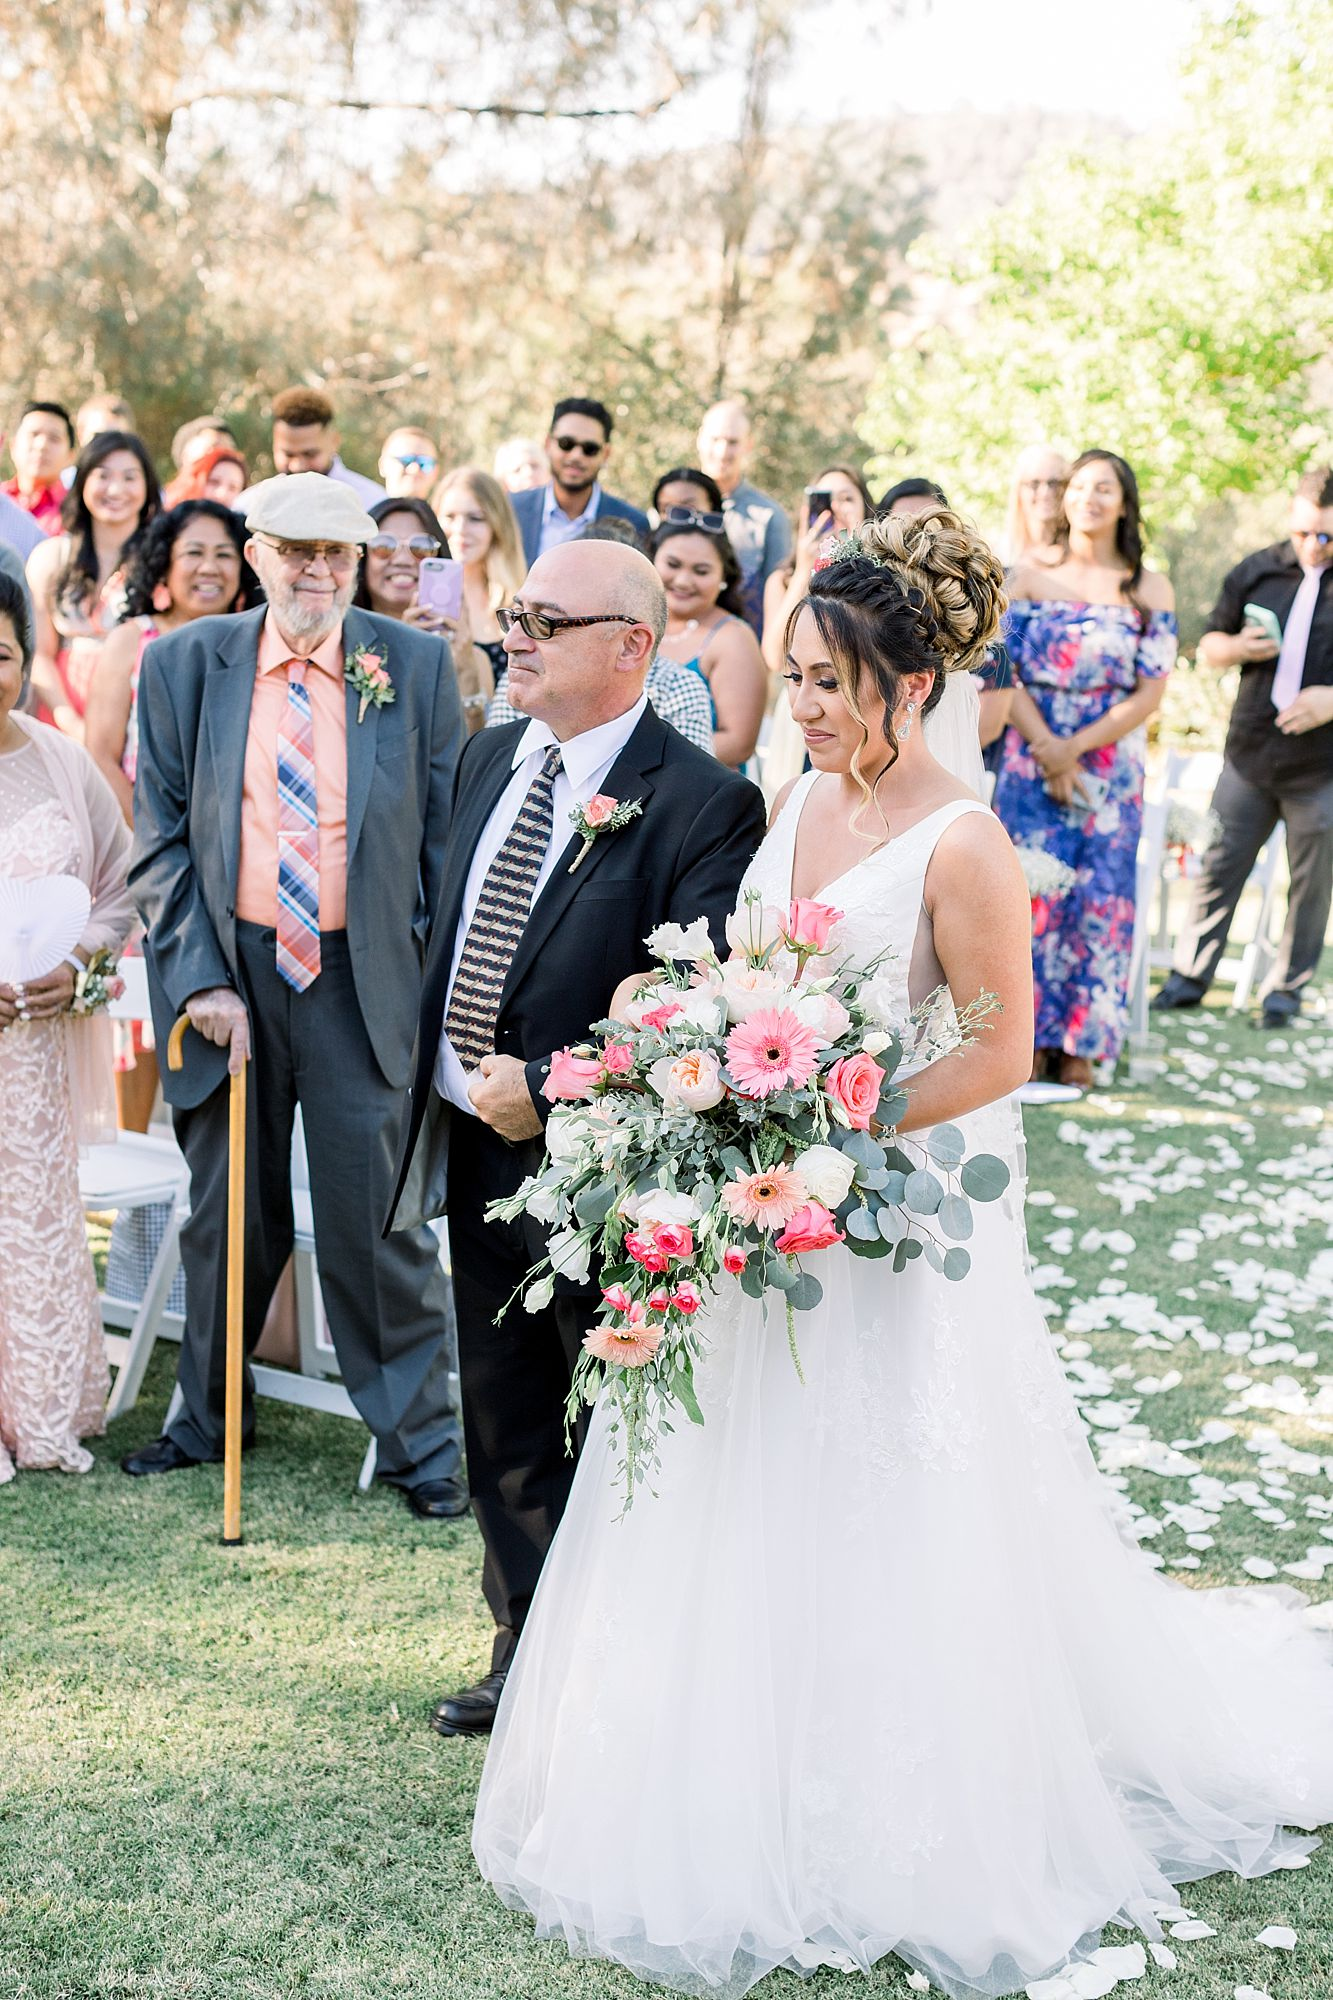 Auburn Valley Golf Club Wedding - Ashley Baumgartner - Auburn Wedding Photographer and Sacramento Wedding Photography_0029.jpg